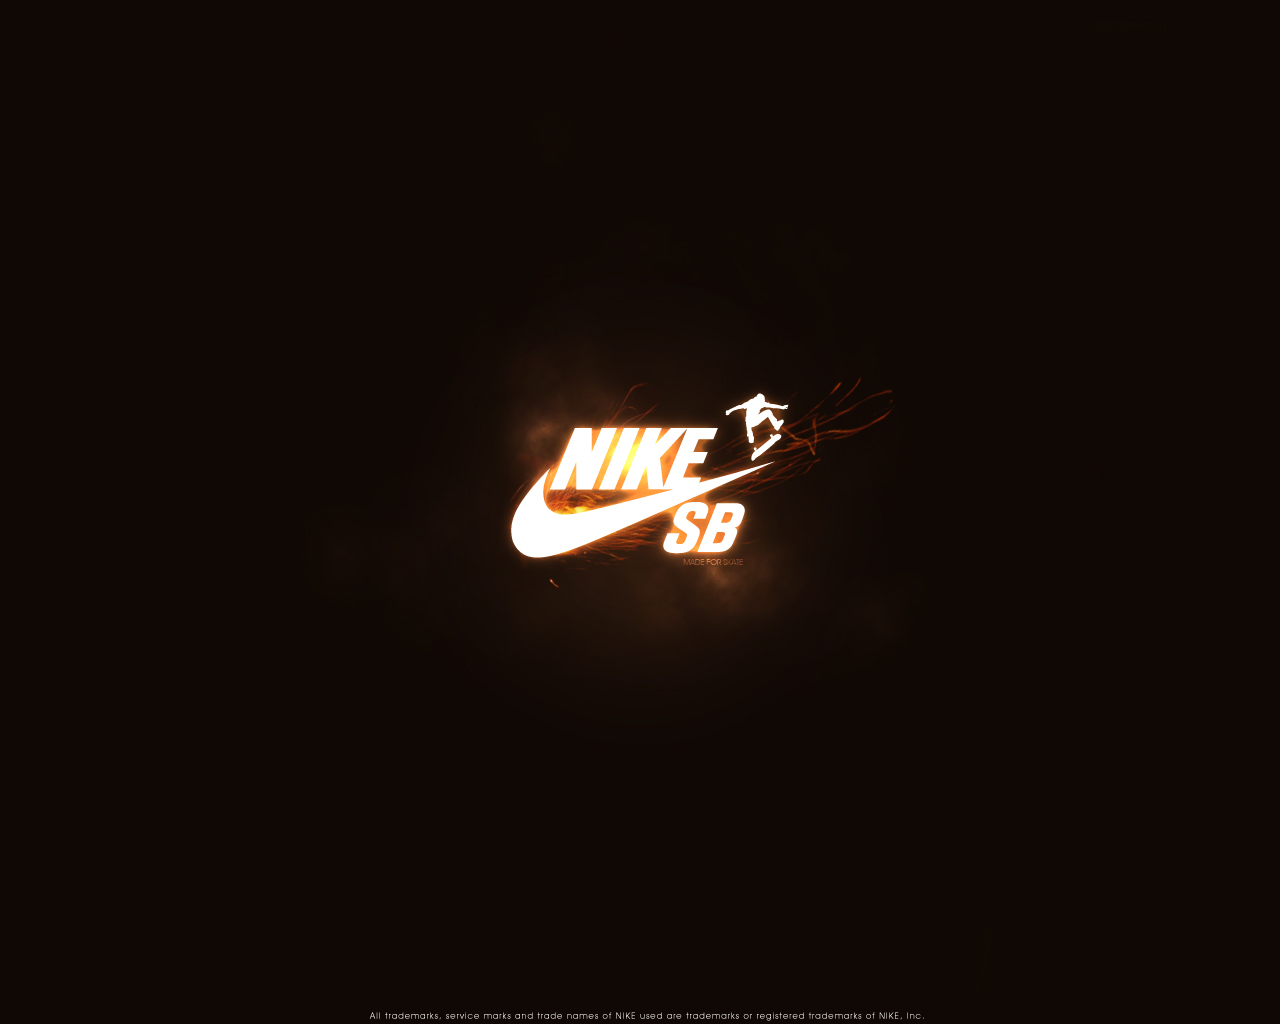 nike sb wallpaper halcyonnightscouk - photo #5